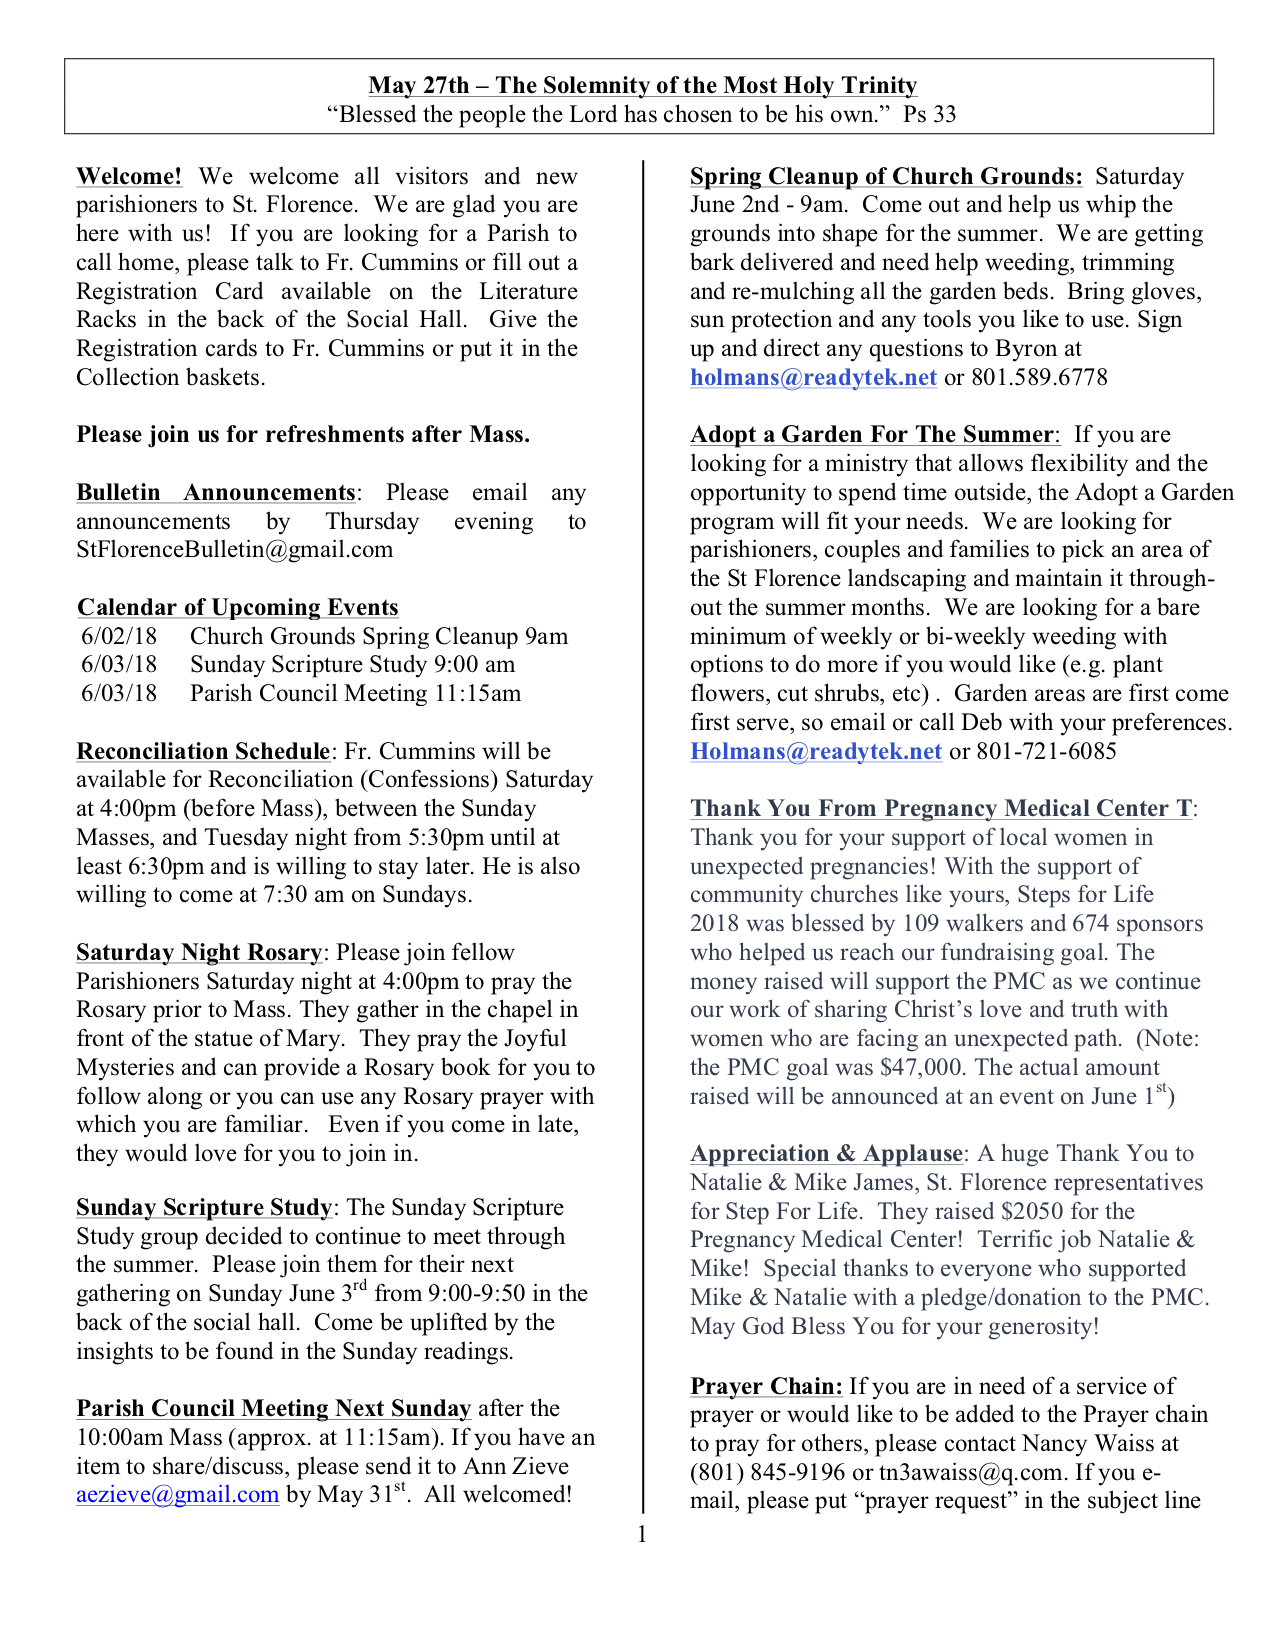 News st florence catholic church official website of st church bulletin may 27 2018 altavistaventures Images